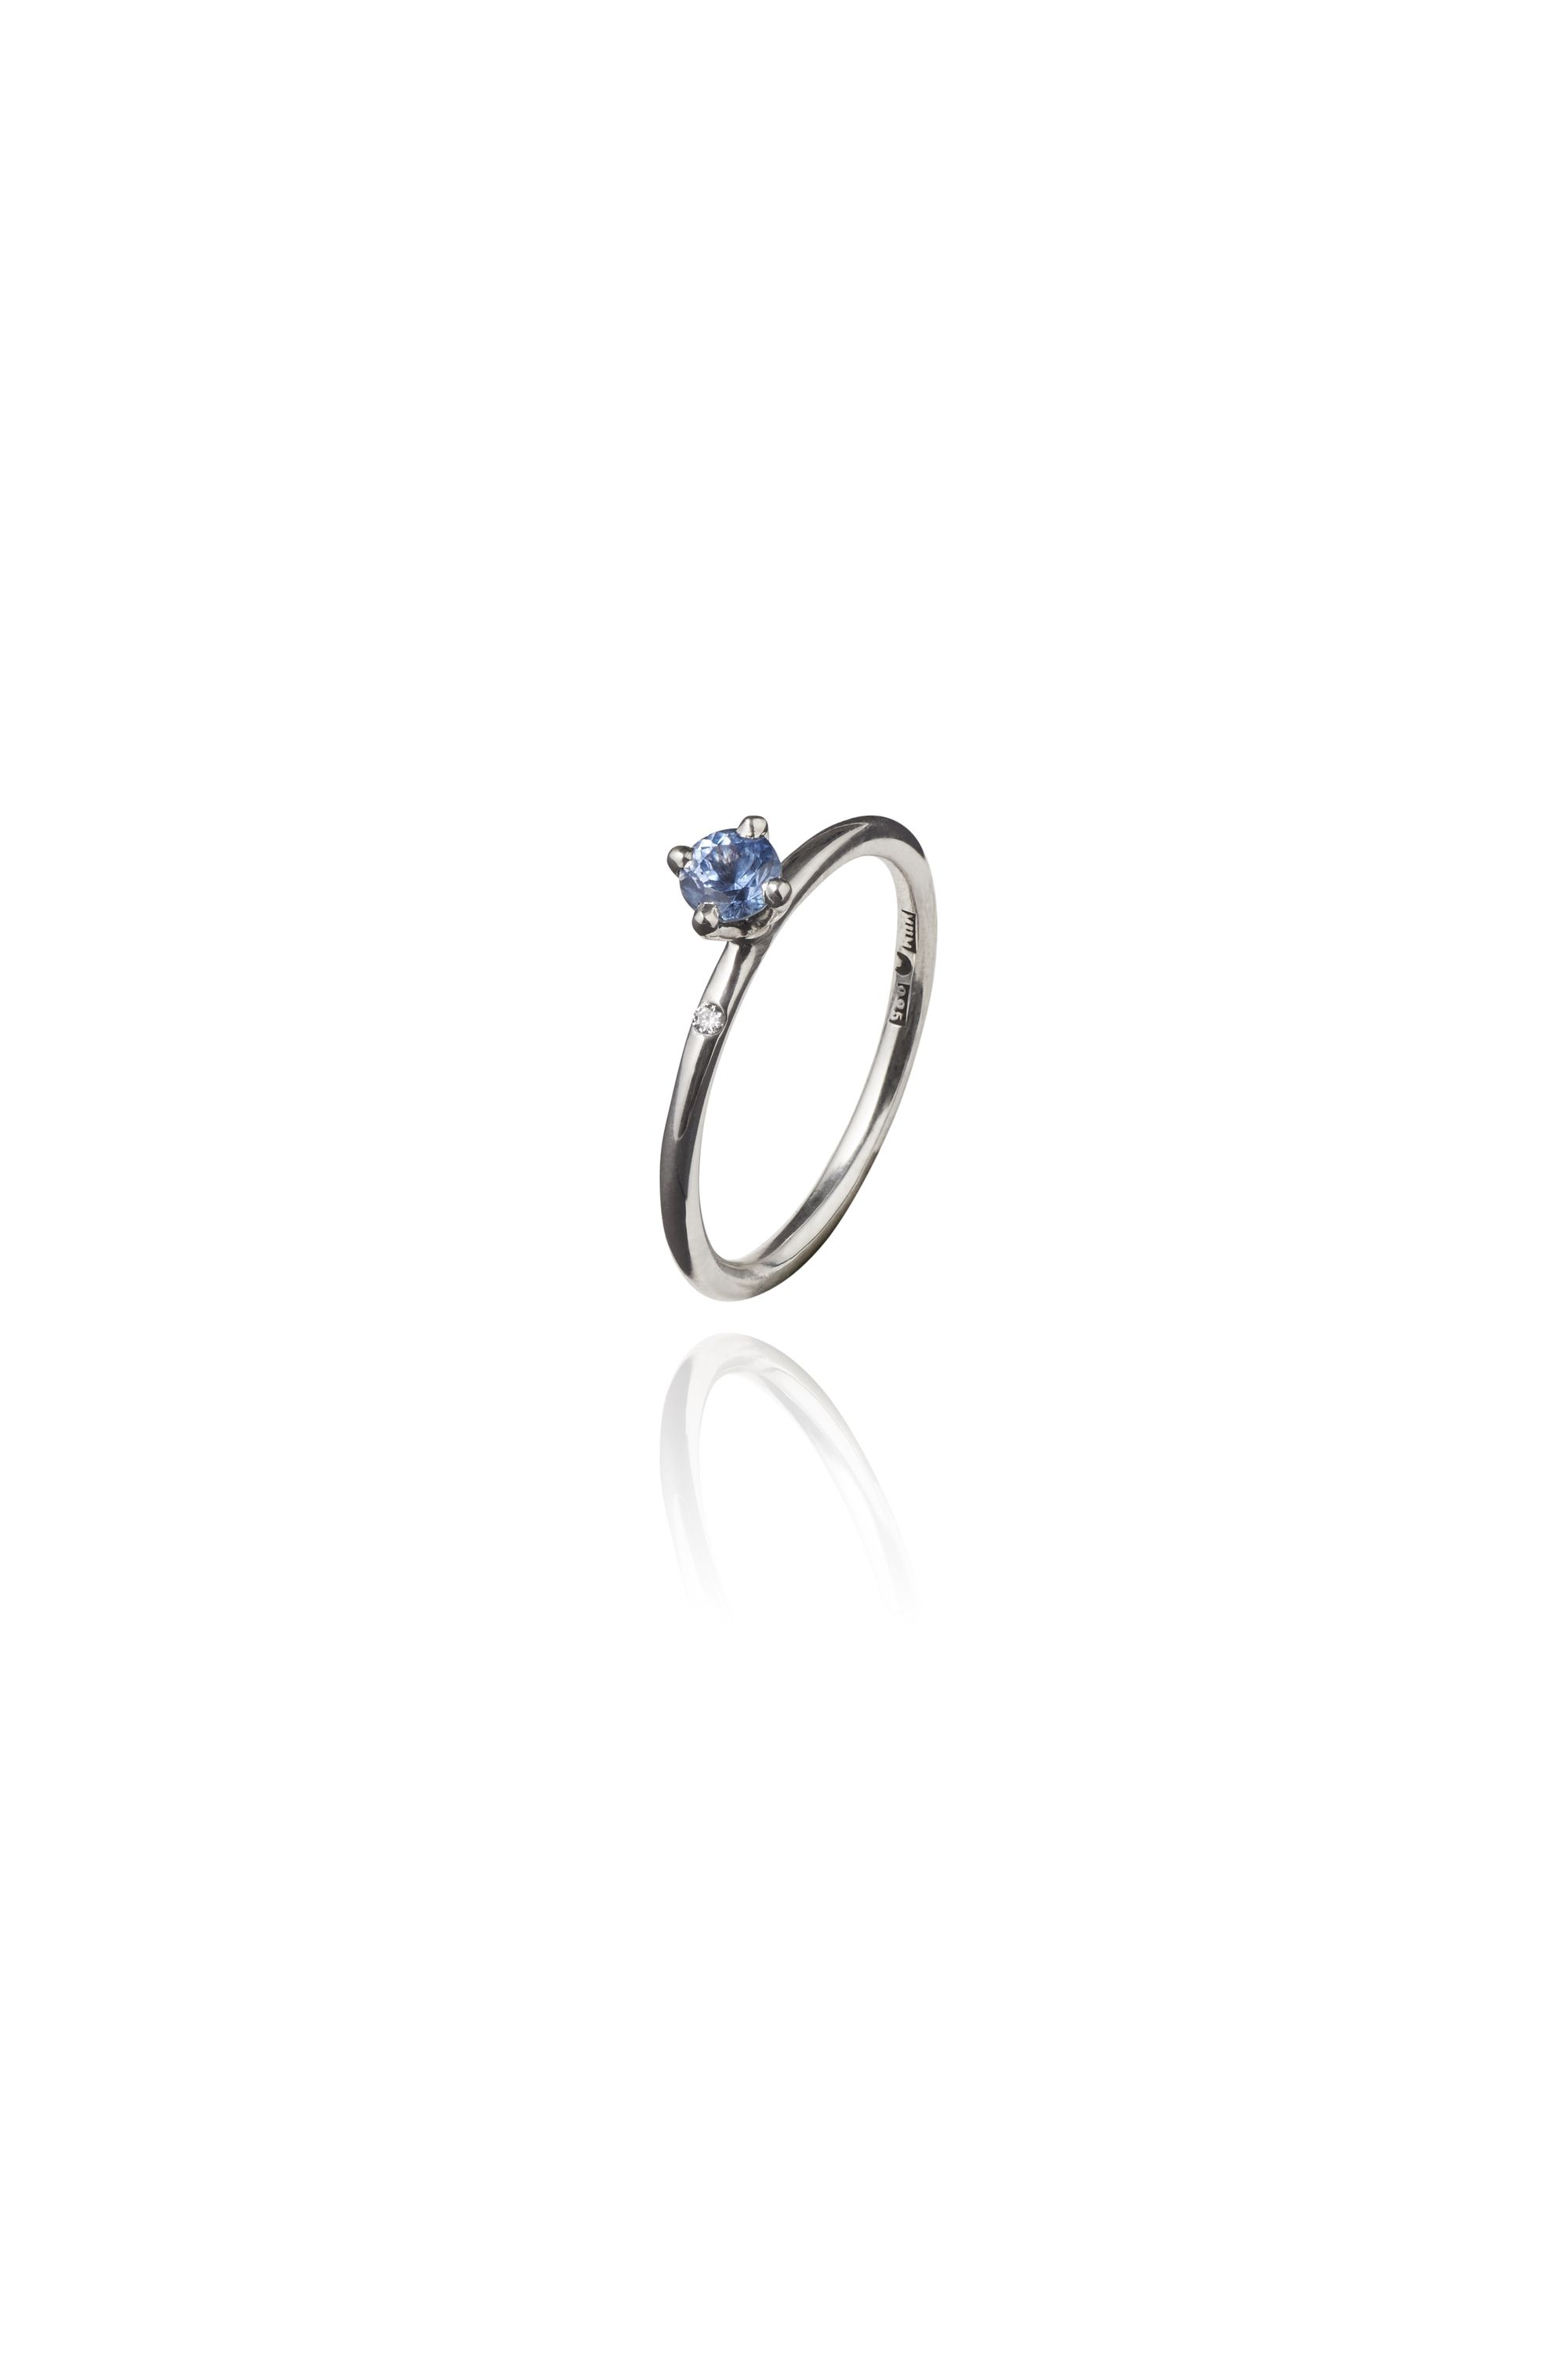 gold products limited edition bellis gemstone blue sapphire alebrusan ring ethical white light engagement fairtrade